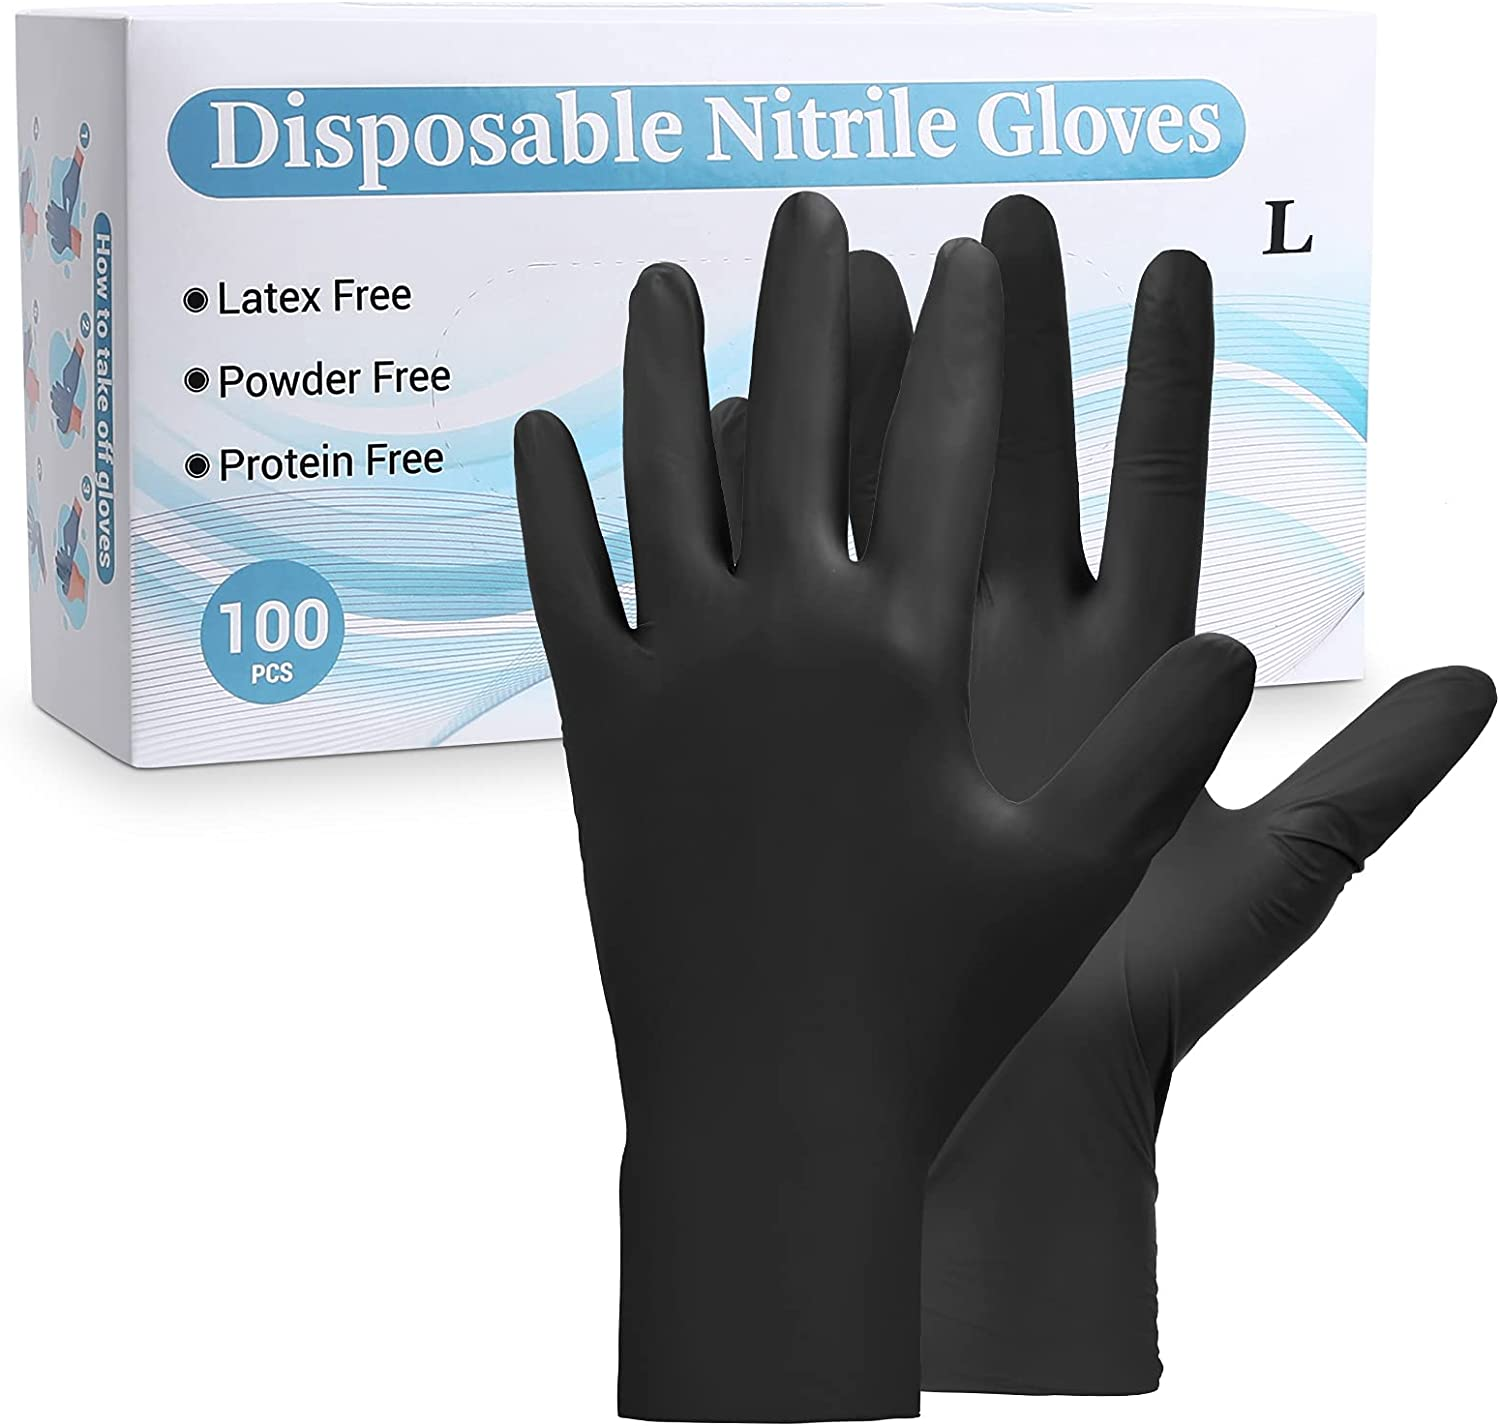 Black Disposable Nitrile Gloves, Food Gloves Industrial Powder Free Latex Free Box of 100